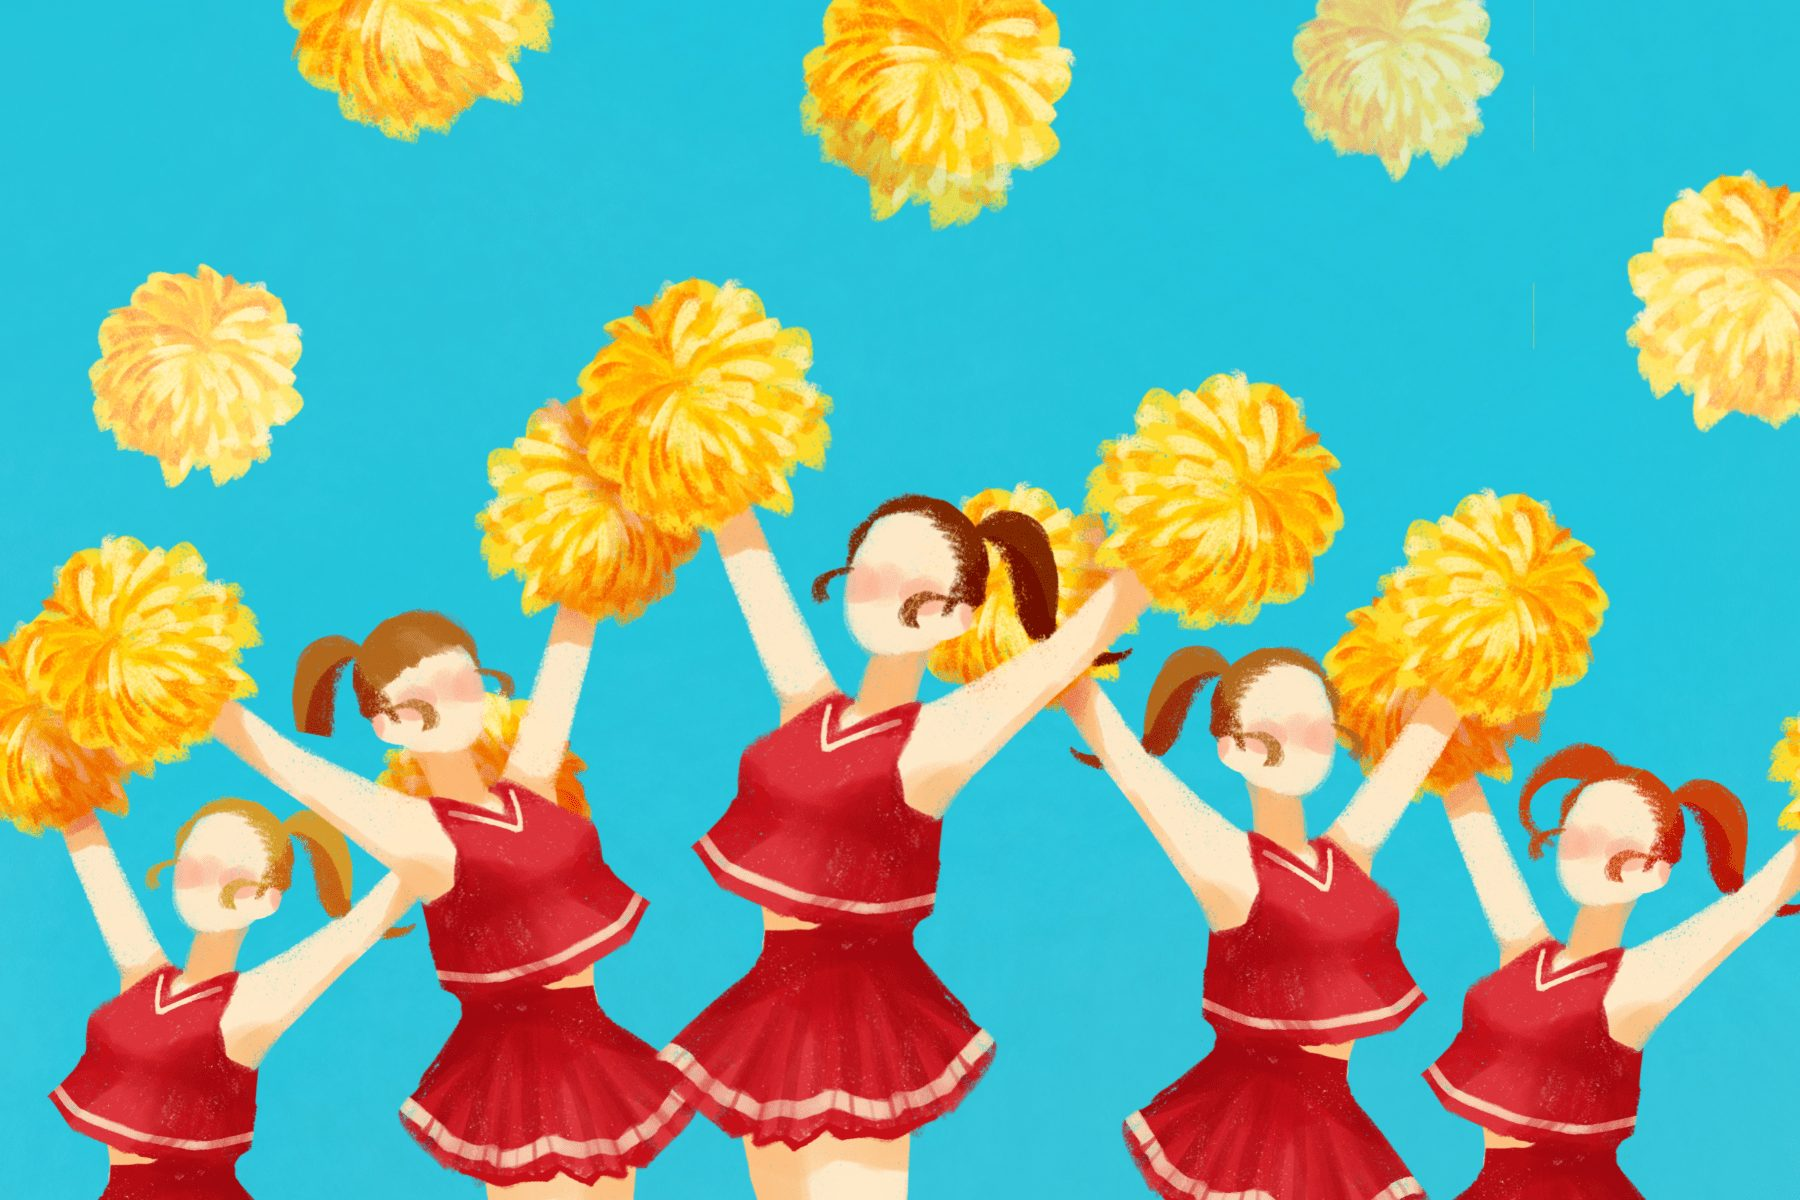 Illustration of cheerleaders in an article about the Cheer documentary on Netflix. (Illustration by Eri Iguchi, Minneapolis College of Art and Design)